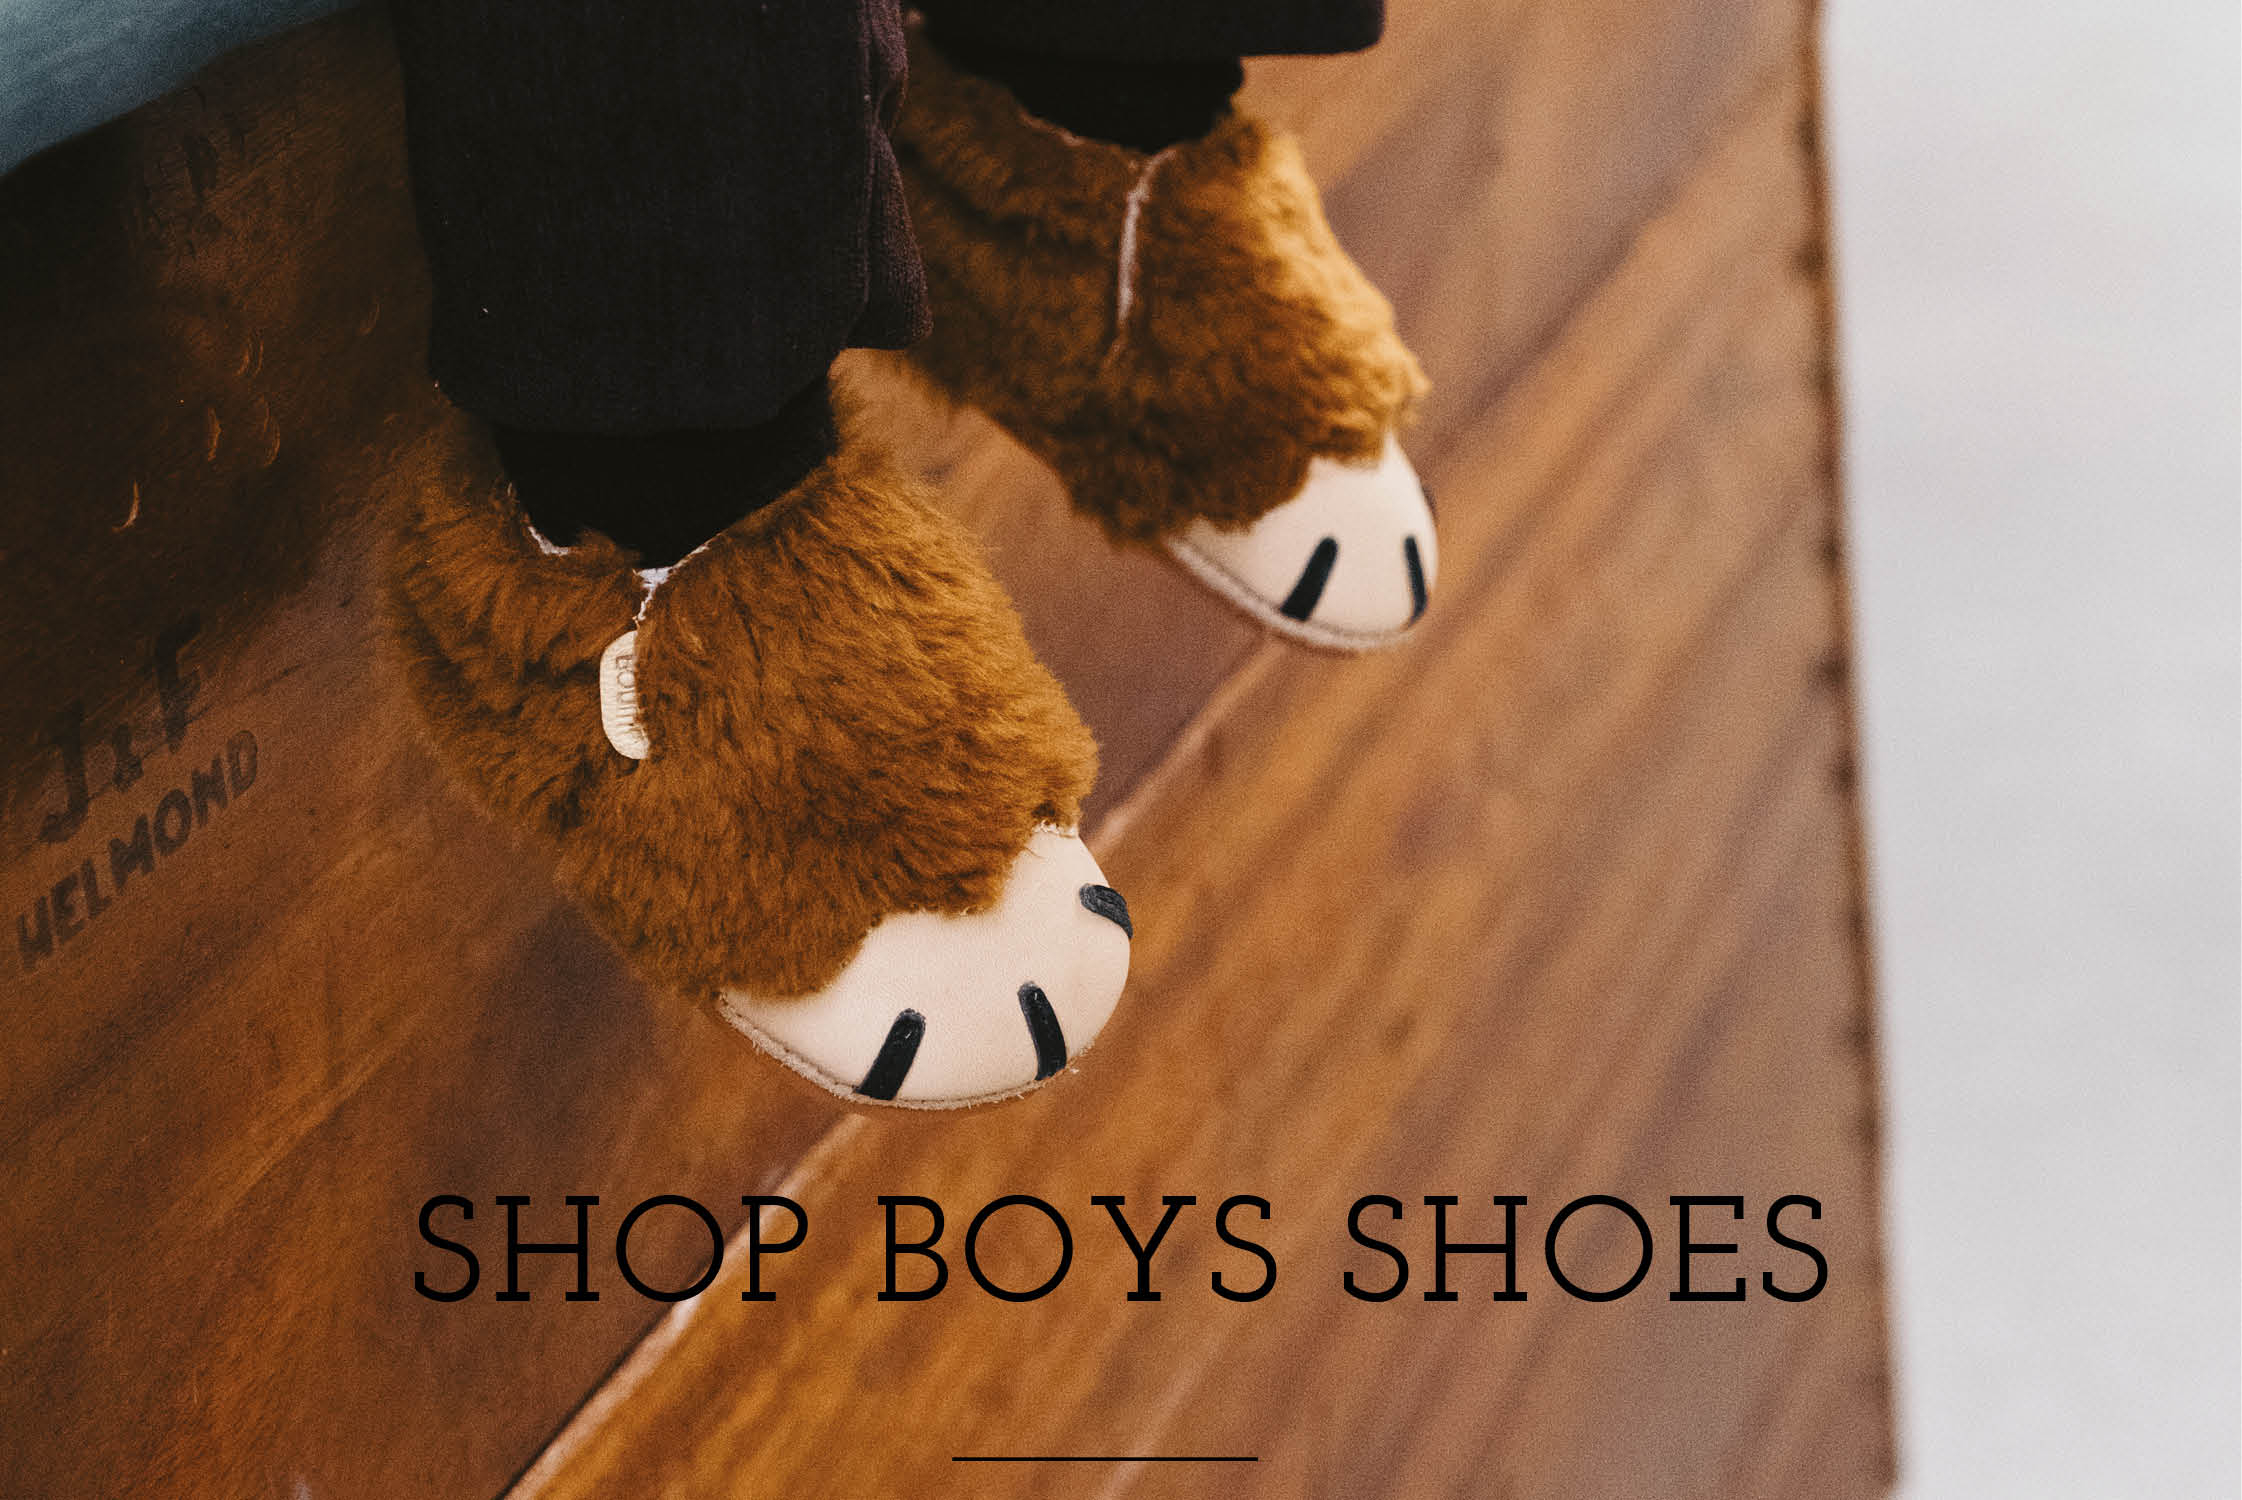 Shop Boys shoes